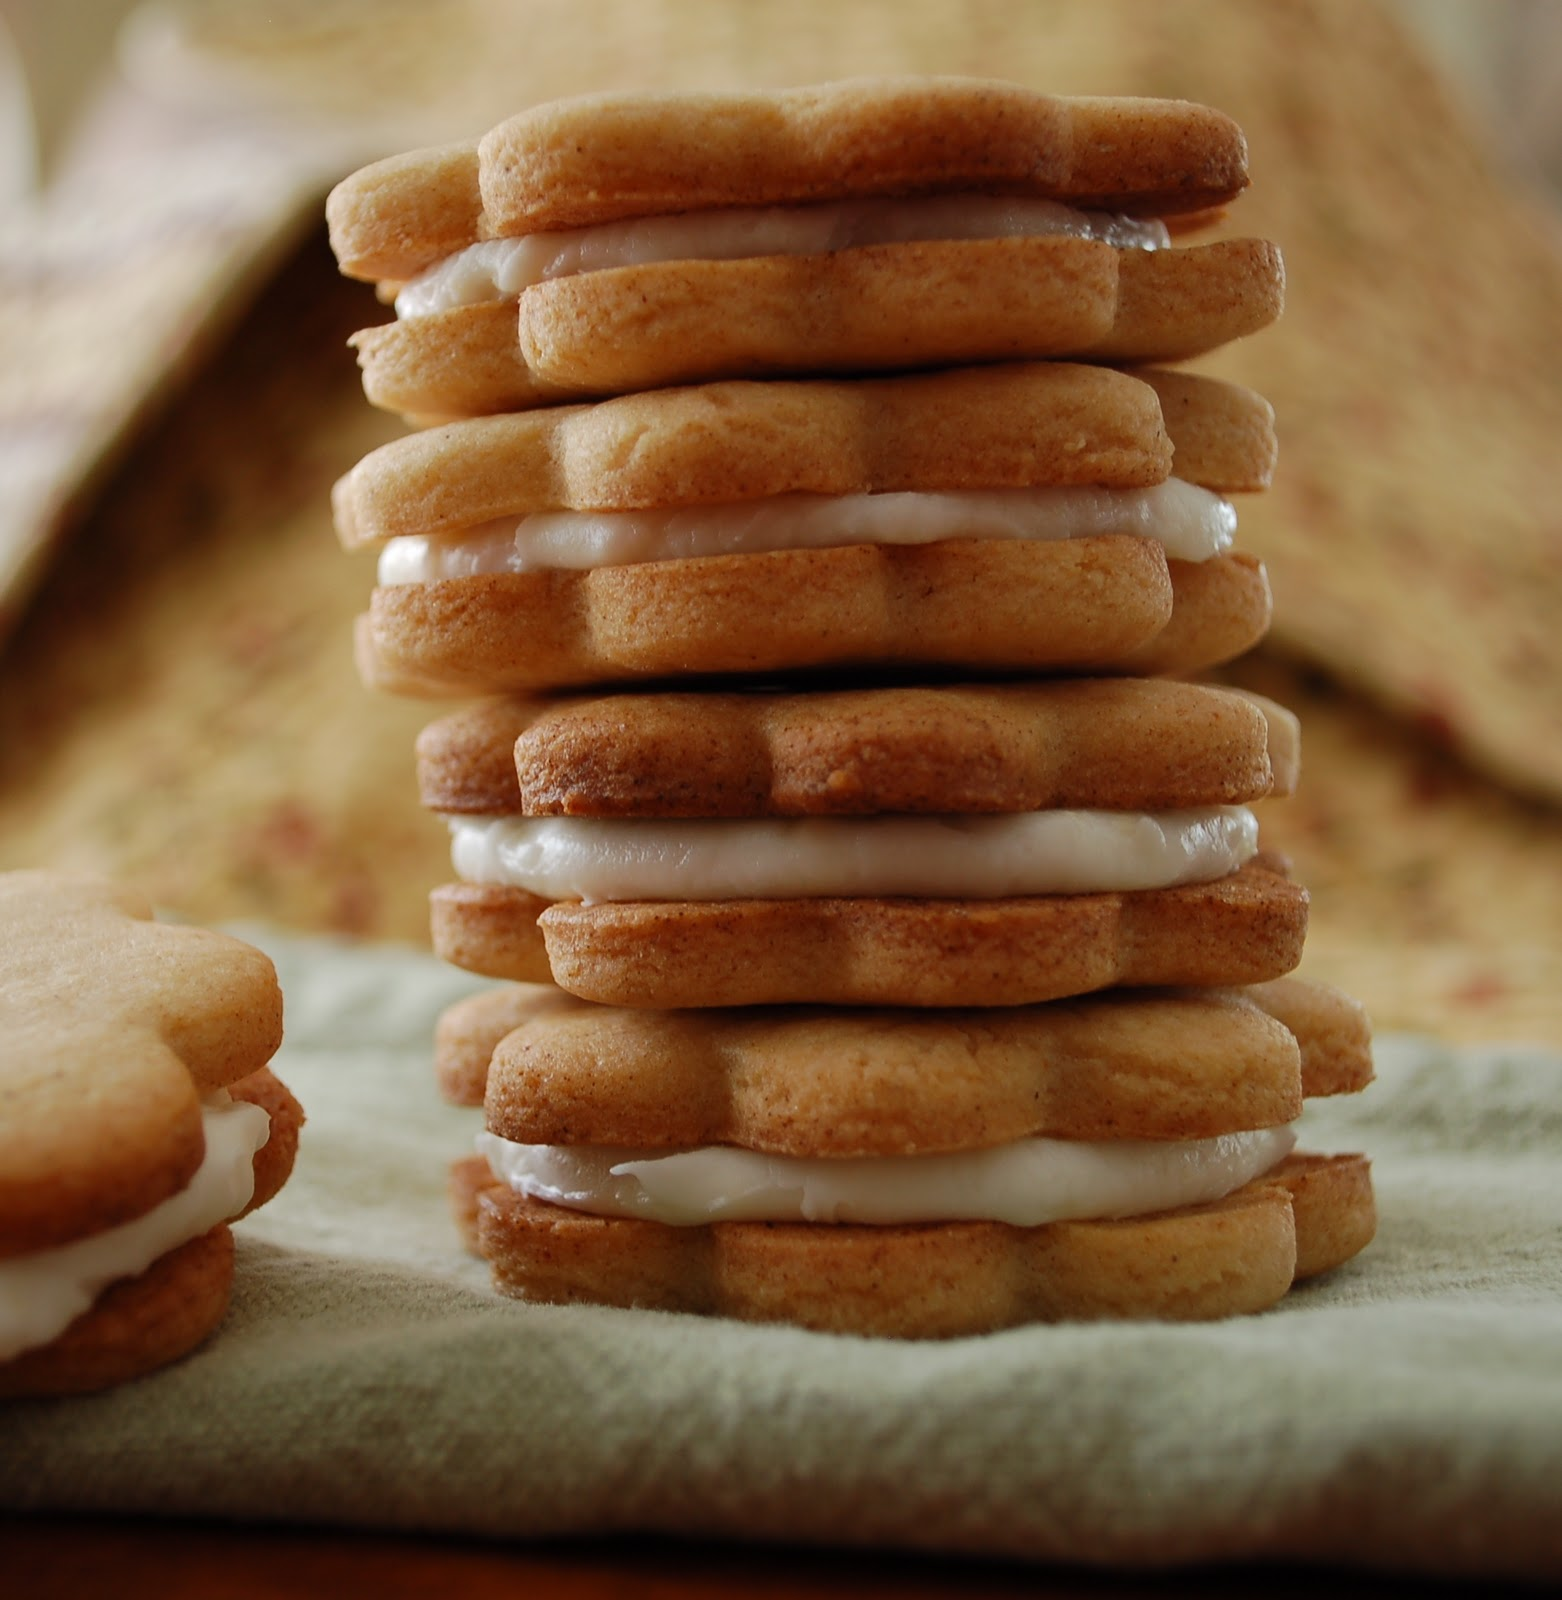 Ginger-Spice Sandwich Cookies With Lemon Cream Recipes — Dishmaps